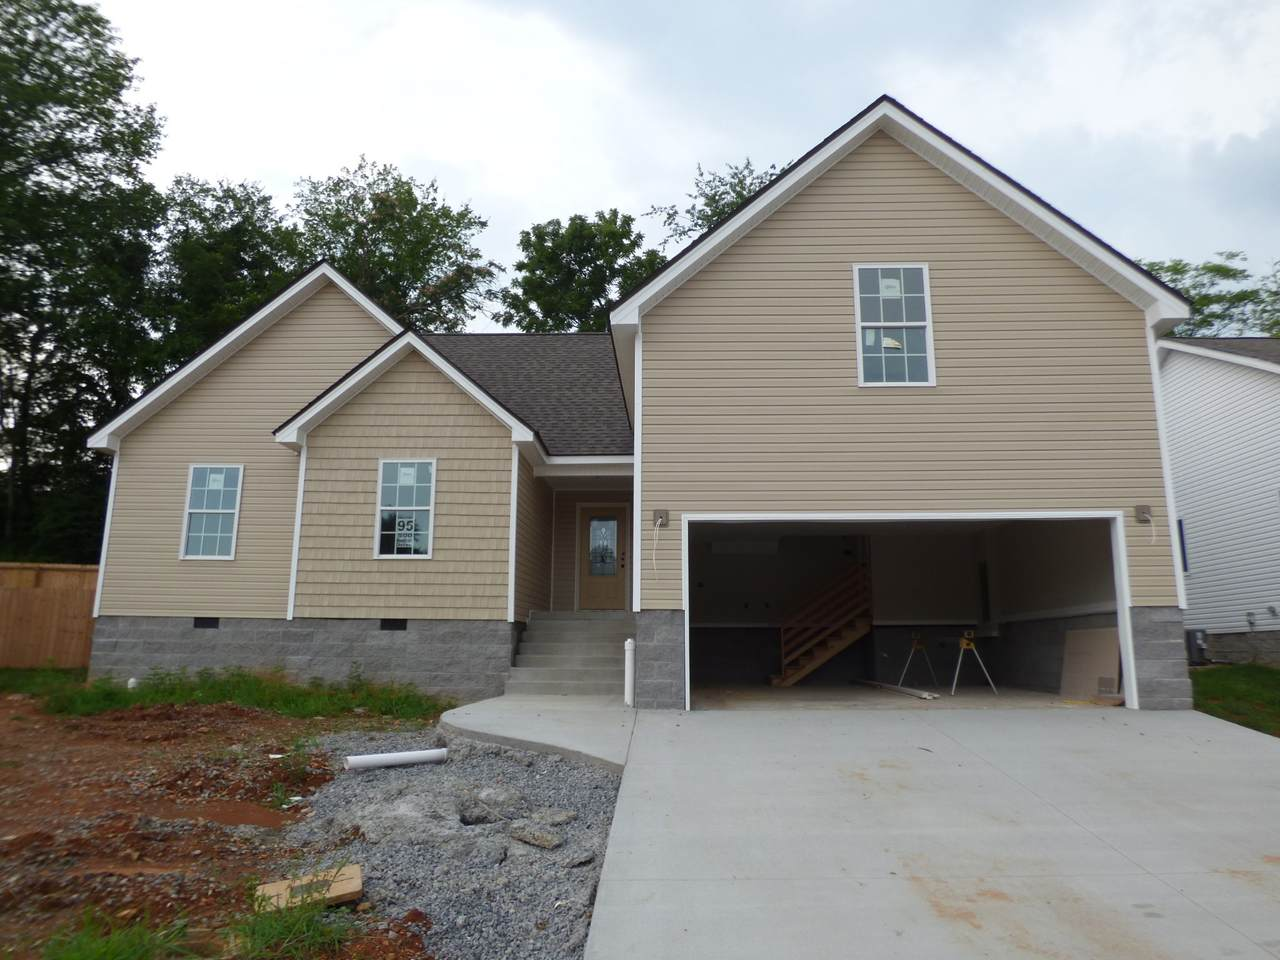 500 Woodtrace Dr - Photo 1